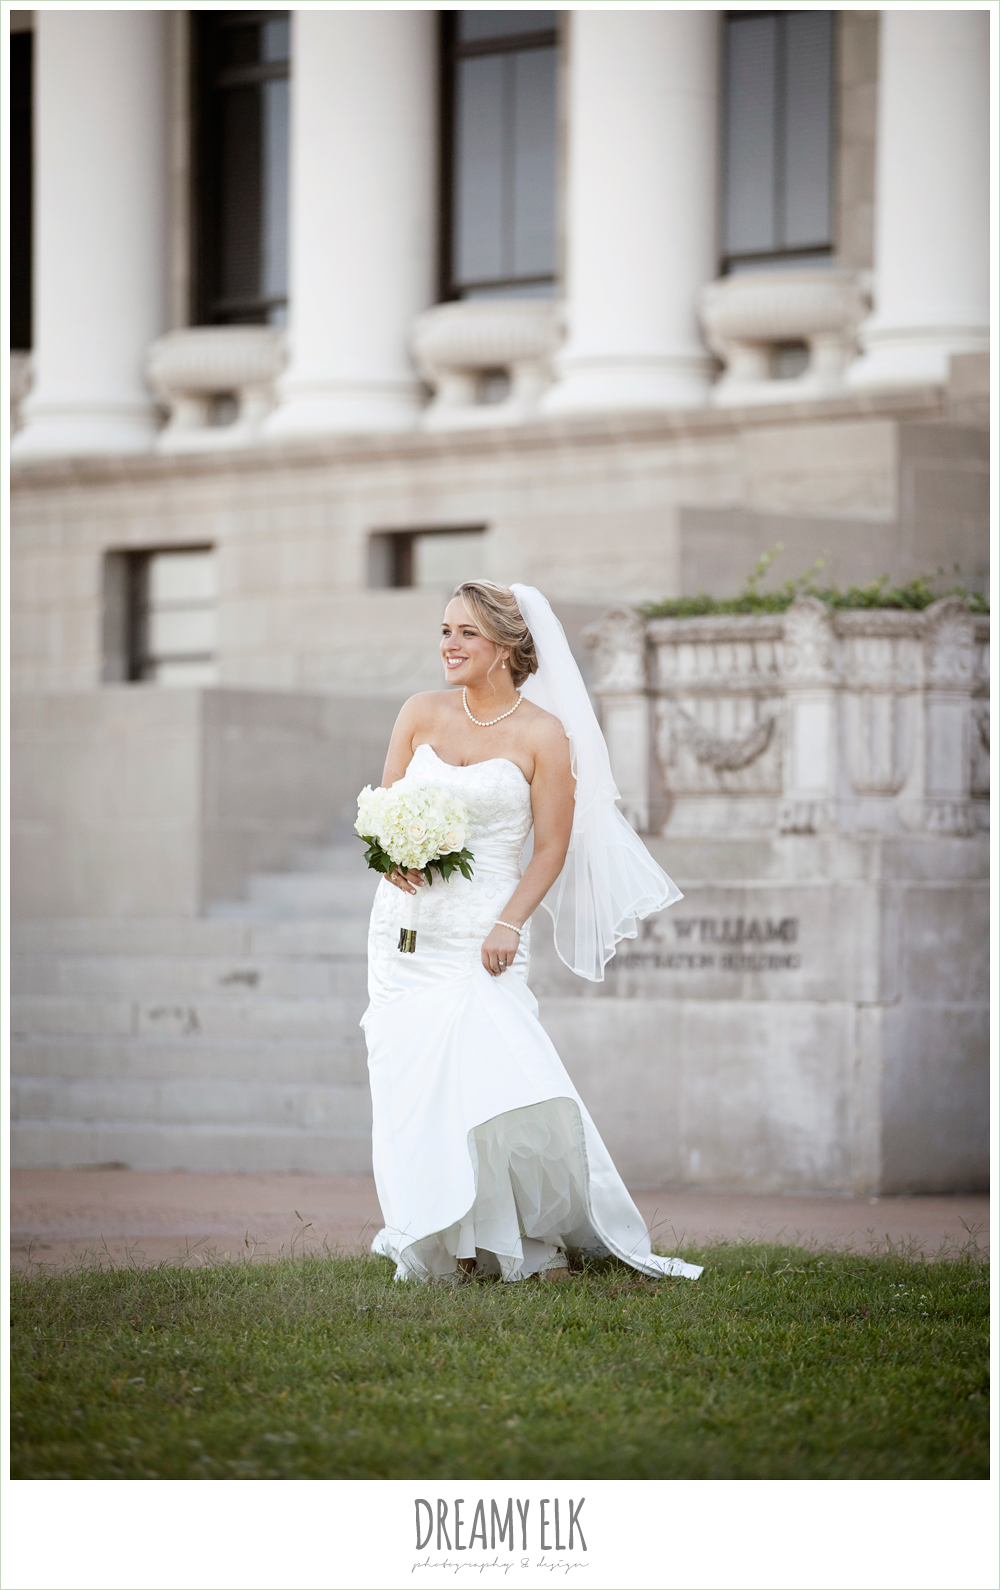 texas a&m campus, bridal photo, trumpet satin wedding dress, white wedding bouquet {dreamy elk photography and design}